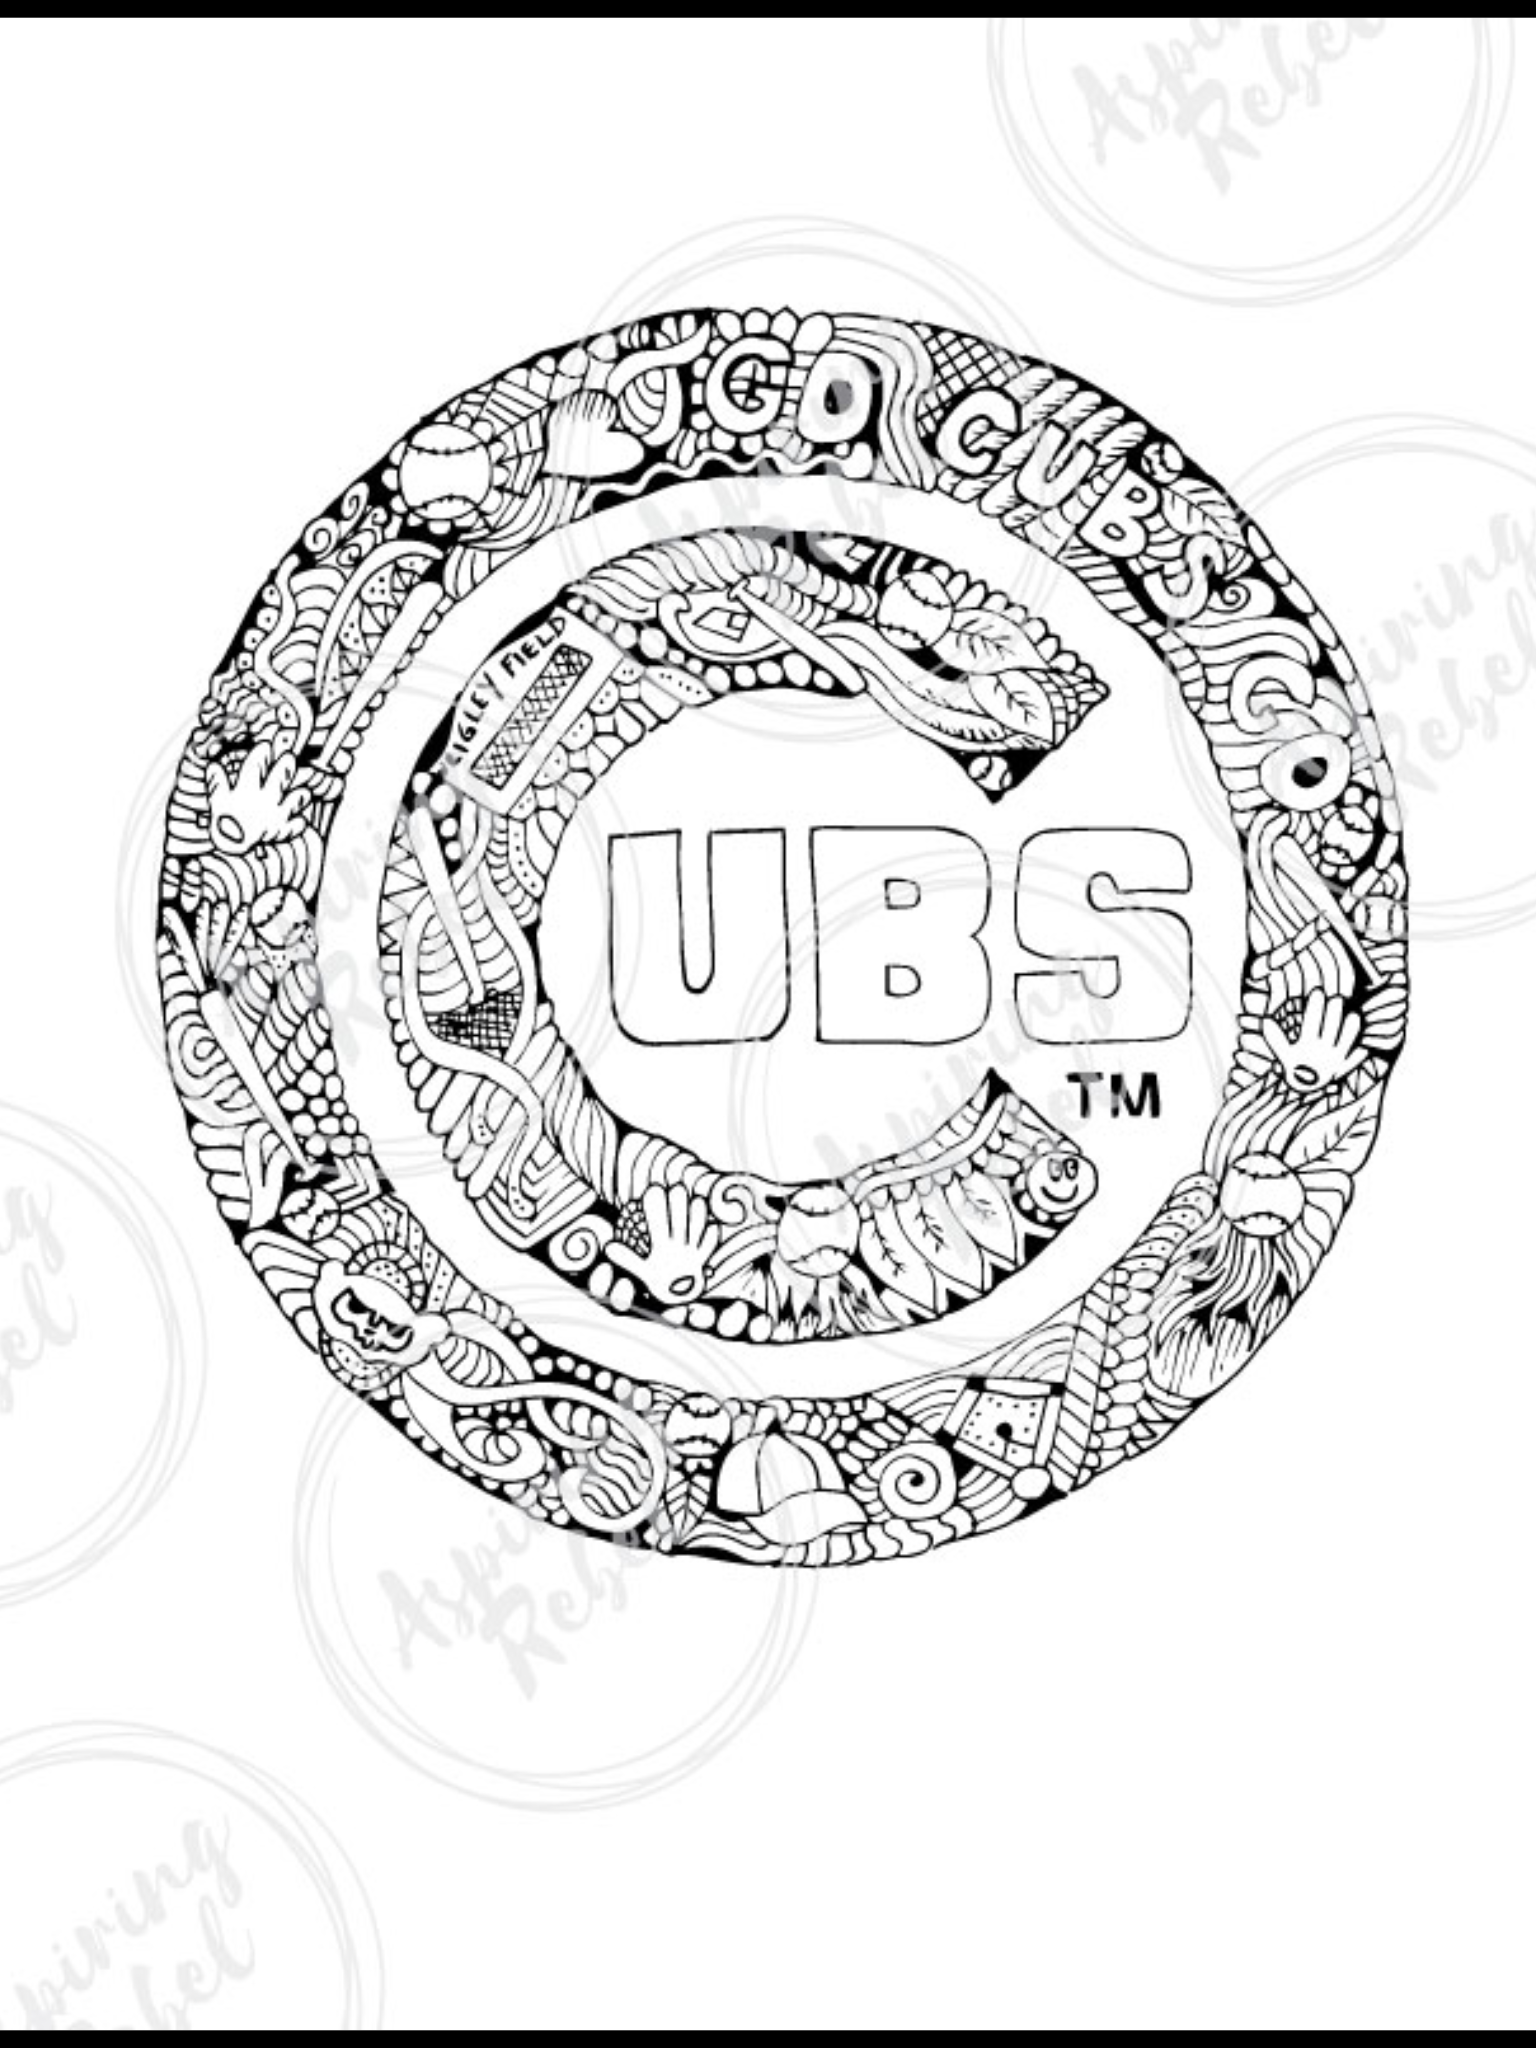 Pin By Terri Arduini On Cubs Doodle Coloring Coloring Pages Chicago Cubs